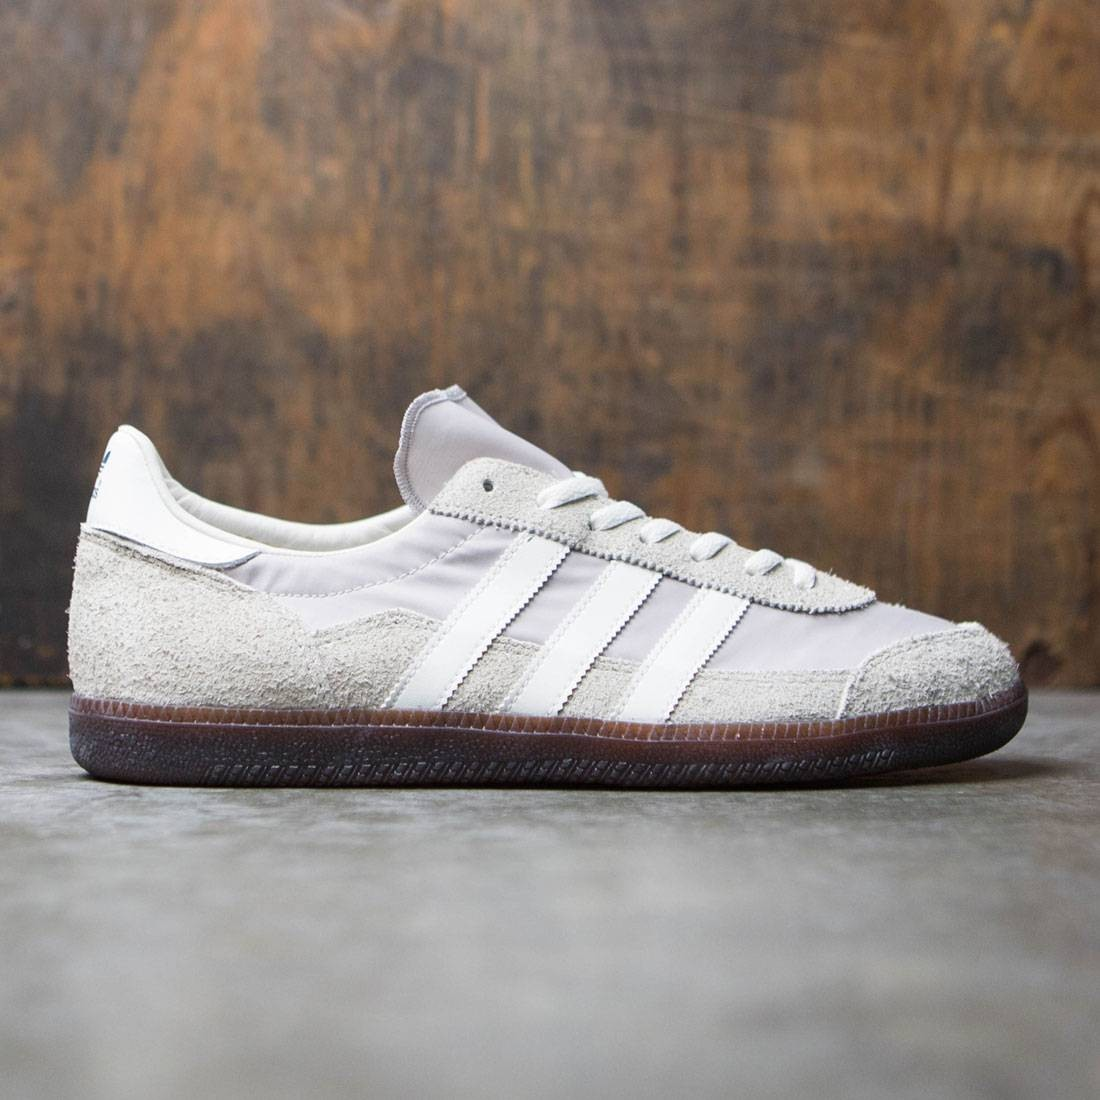 【海外限定】アディダス 白 ホワイト 靴 メンズ靴 【 ADIDAS WHITE MEN WENSLEY SPZL GRAY CLEAR GRANITE OFF COLLEGIATE NAVY 】